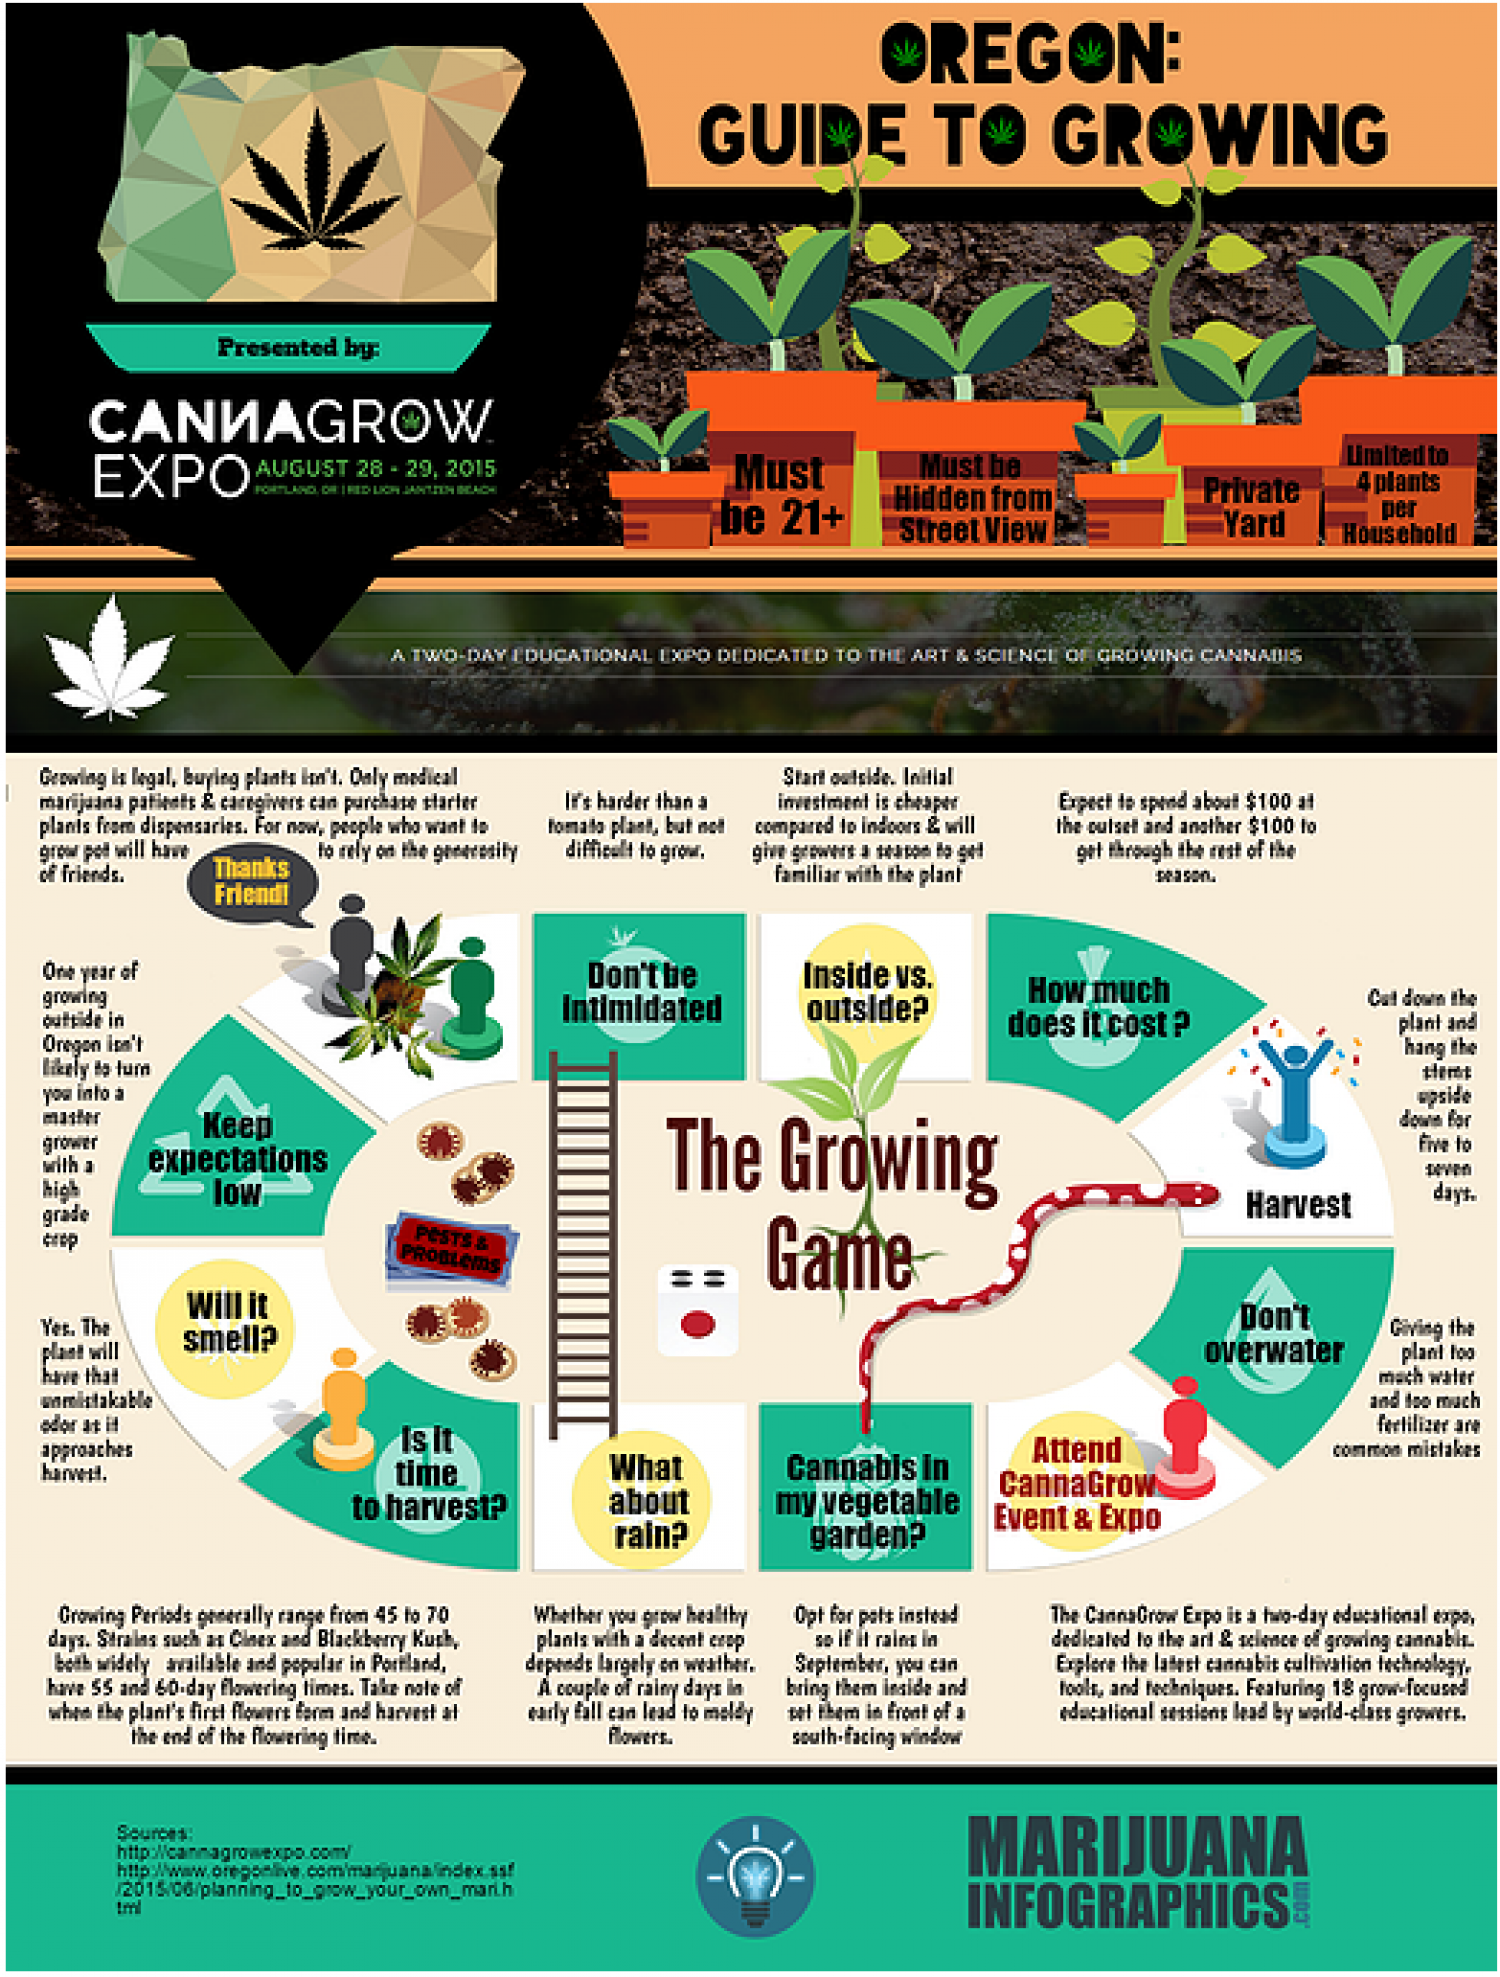 CannaGrow: Oregon Guide to Growing  Infographic